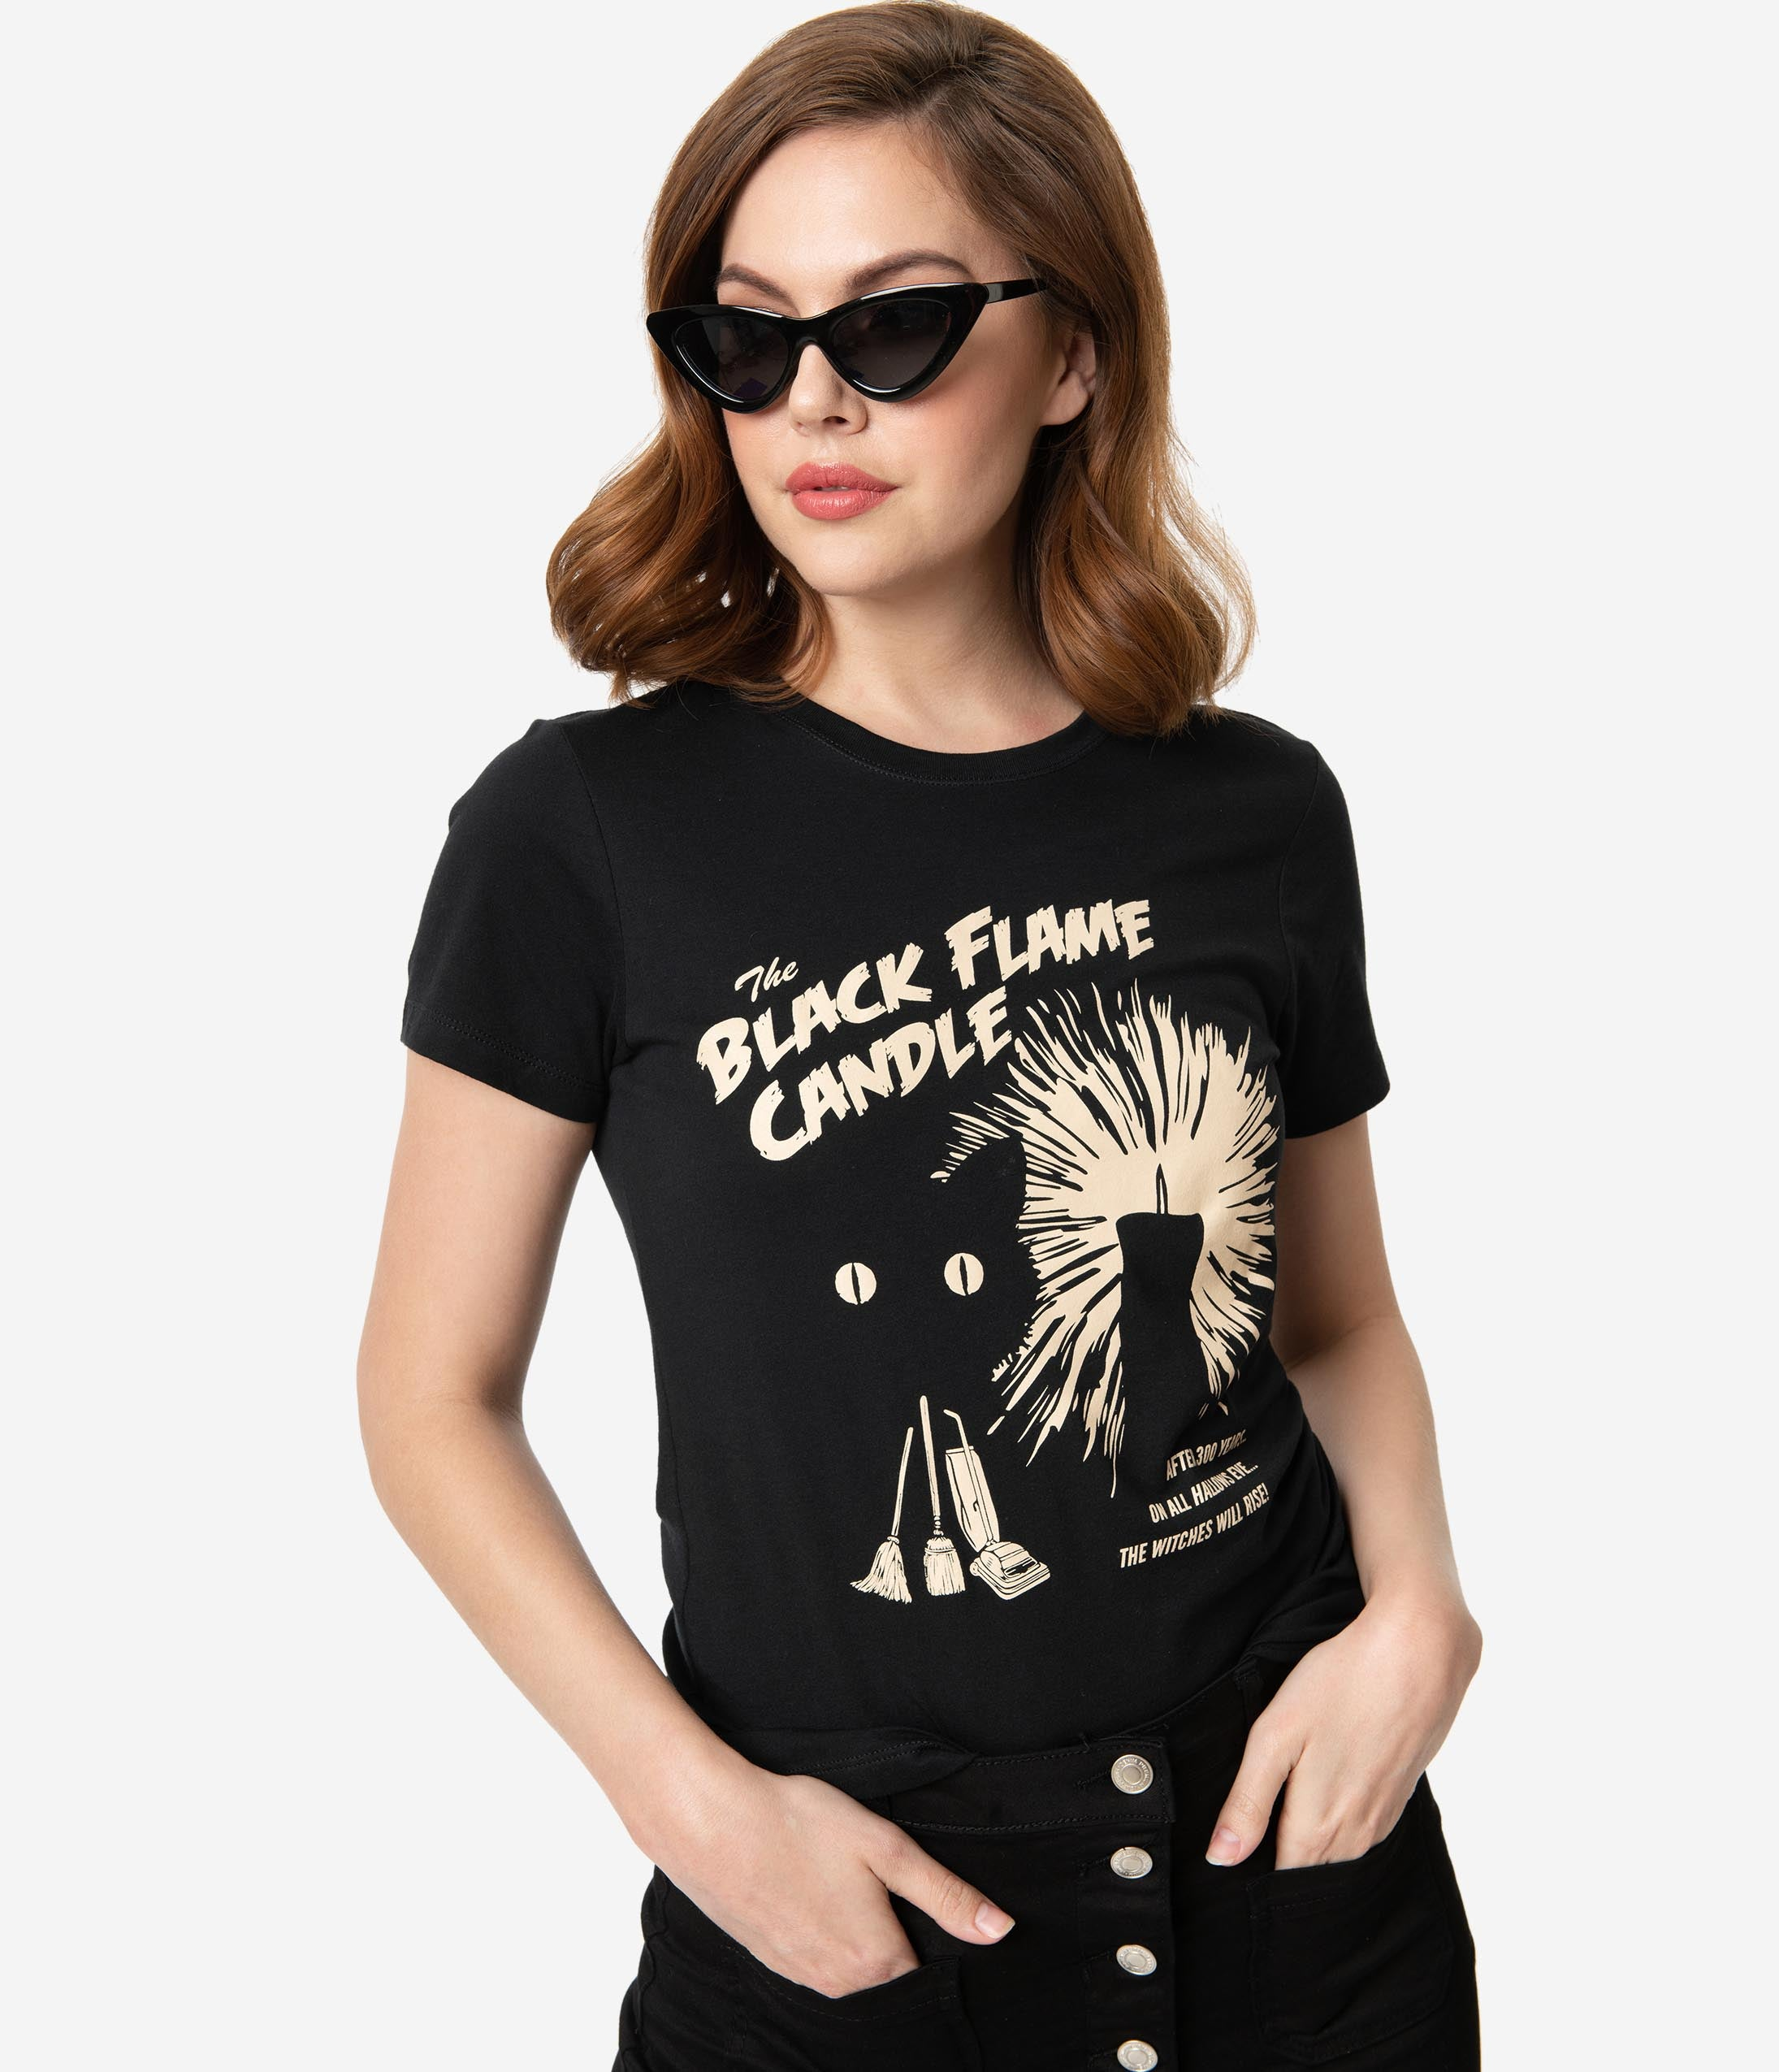 Easy Retro Halloween Costumes – Last Minute Ideas Whosits And Whatsits Black Flame Candle Short Sleeve Womens Tee $32.00 AT vintagedancer.com